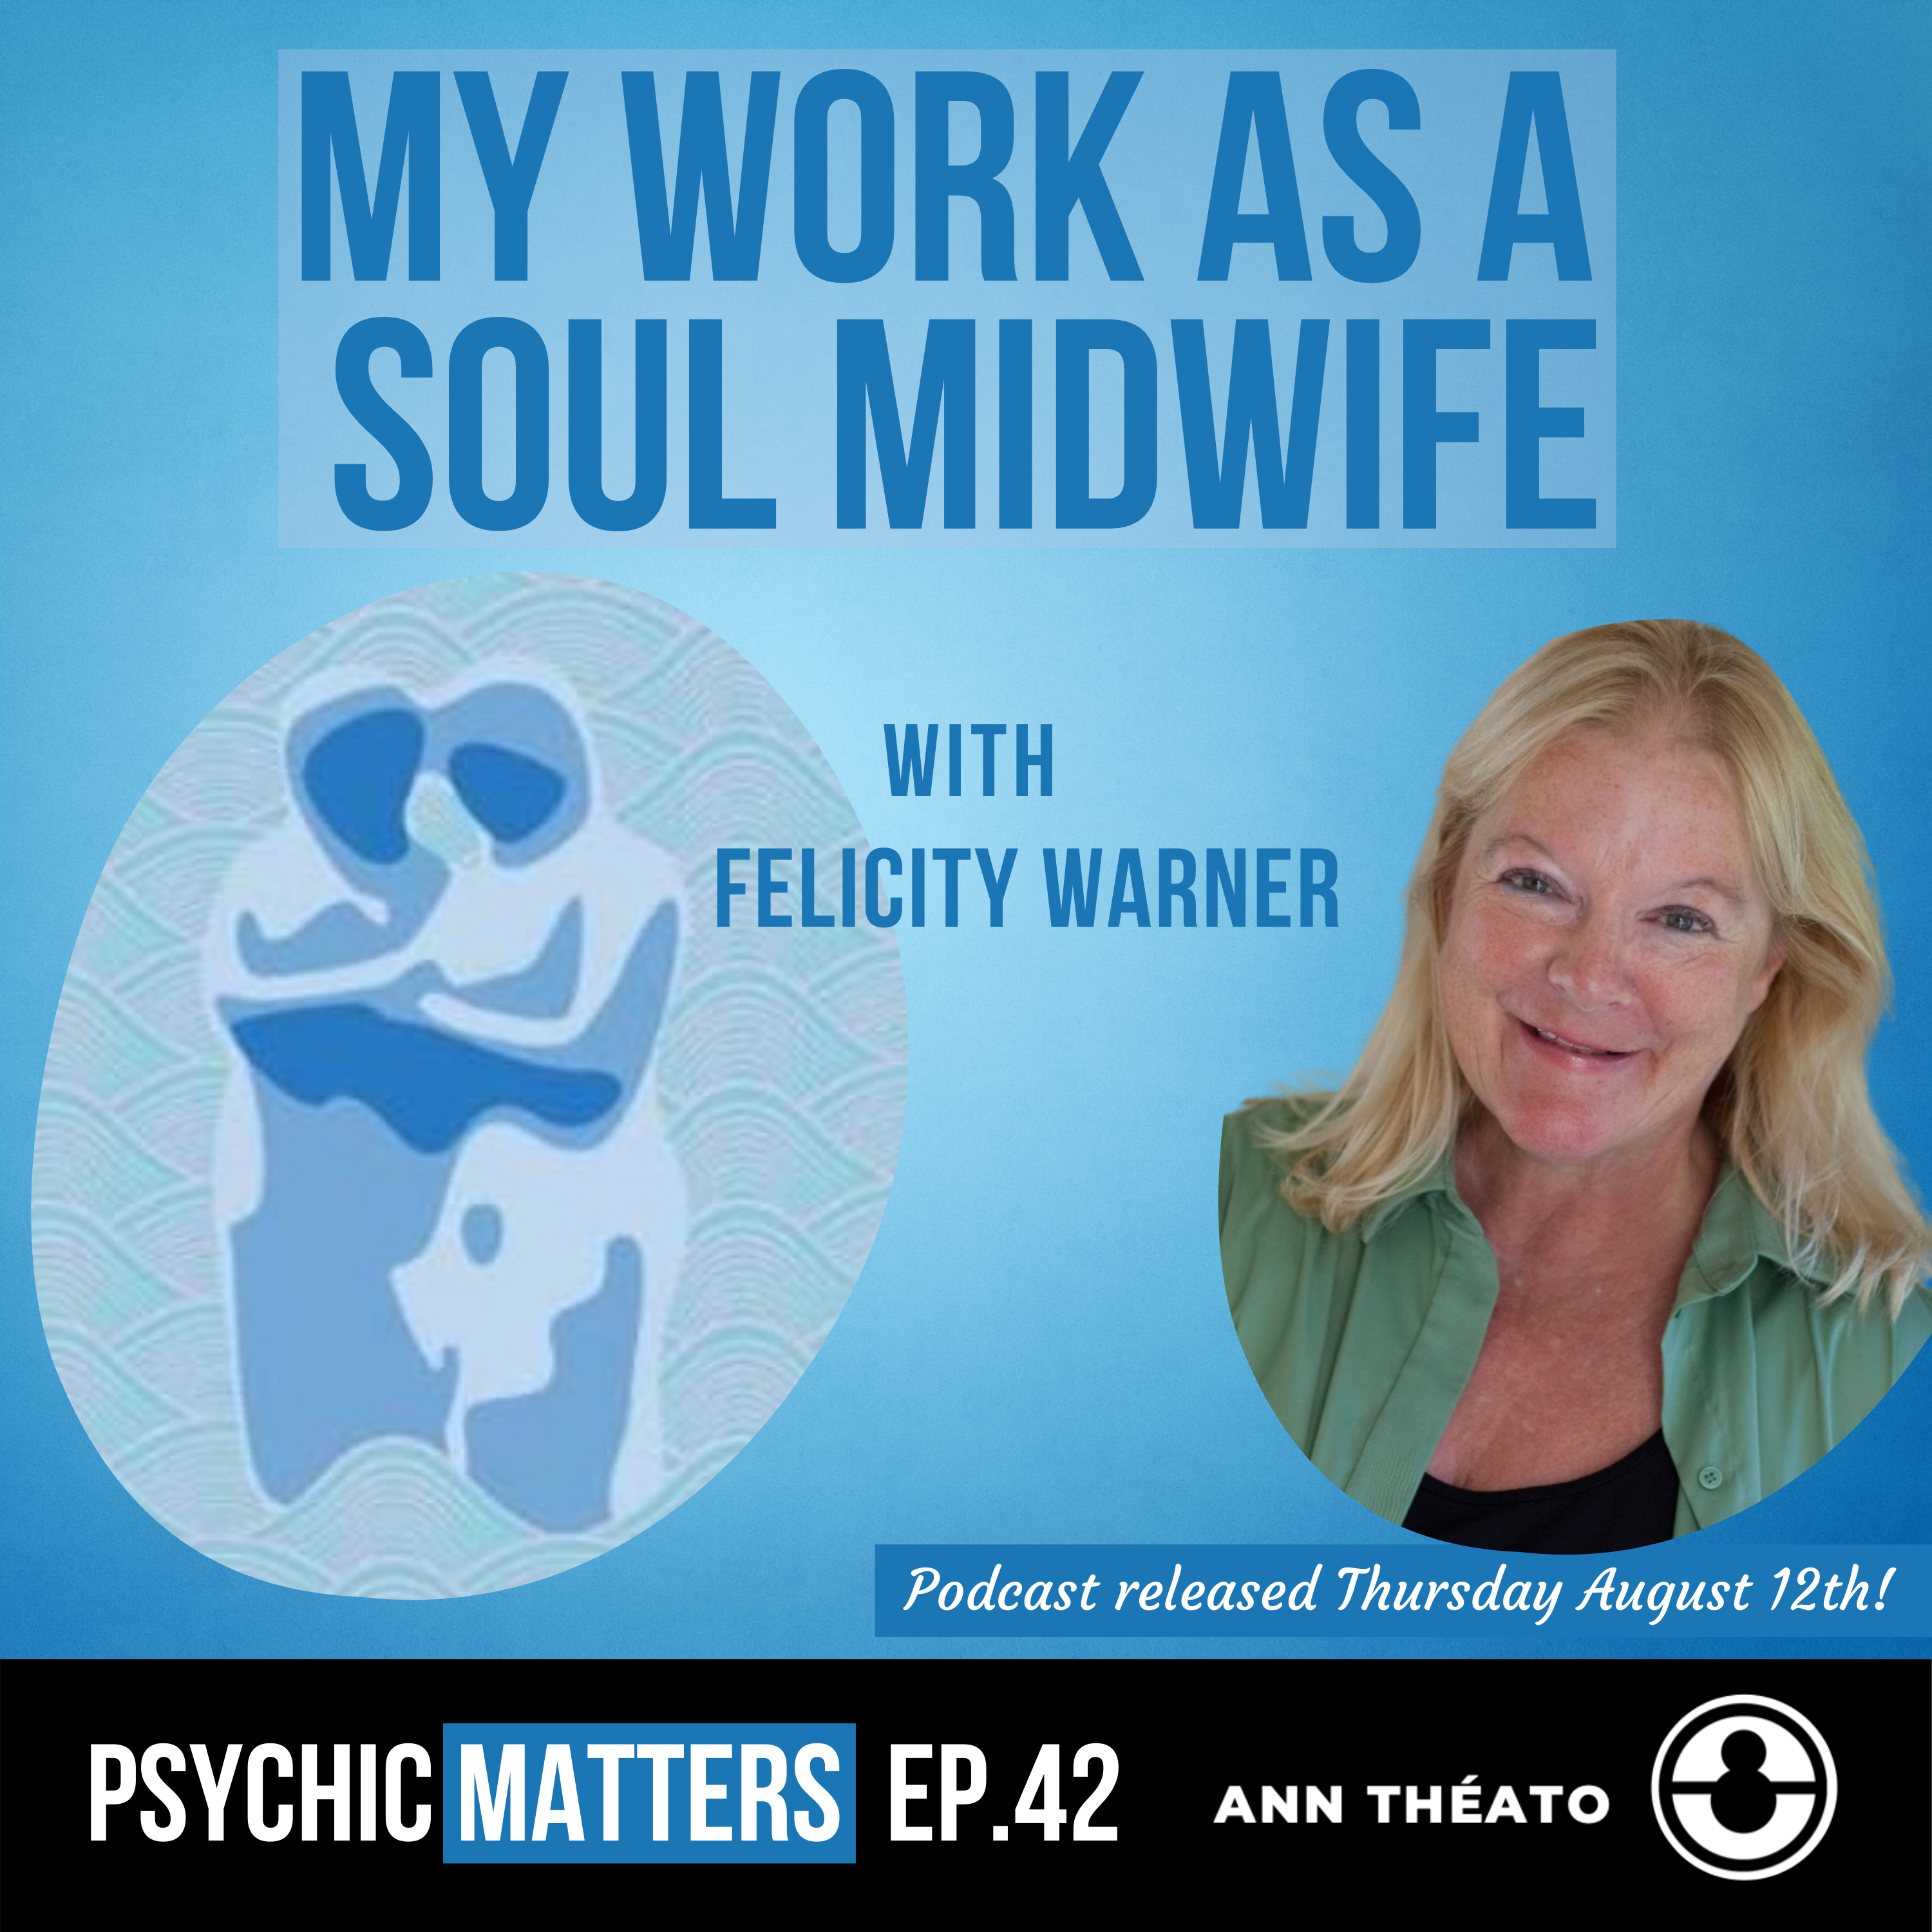 Episode 42 - My Work As A Soul Midwife